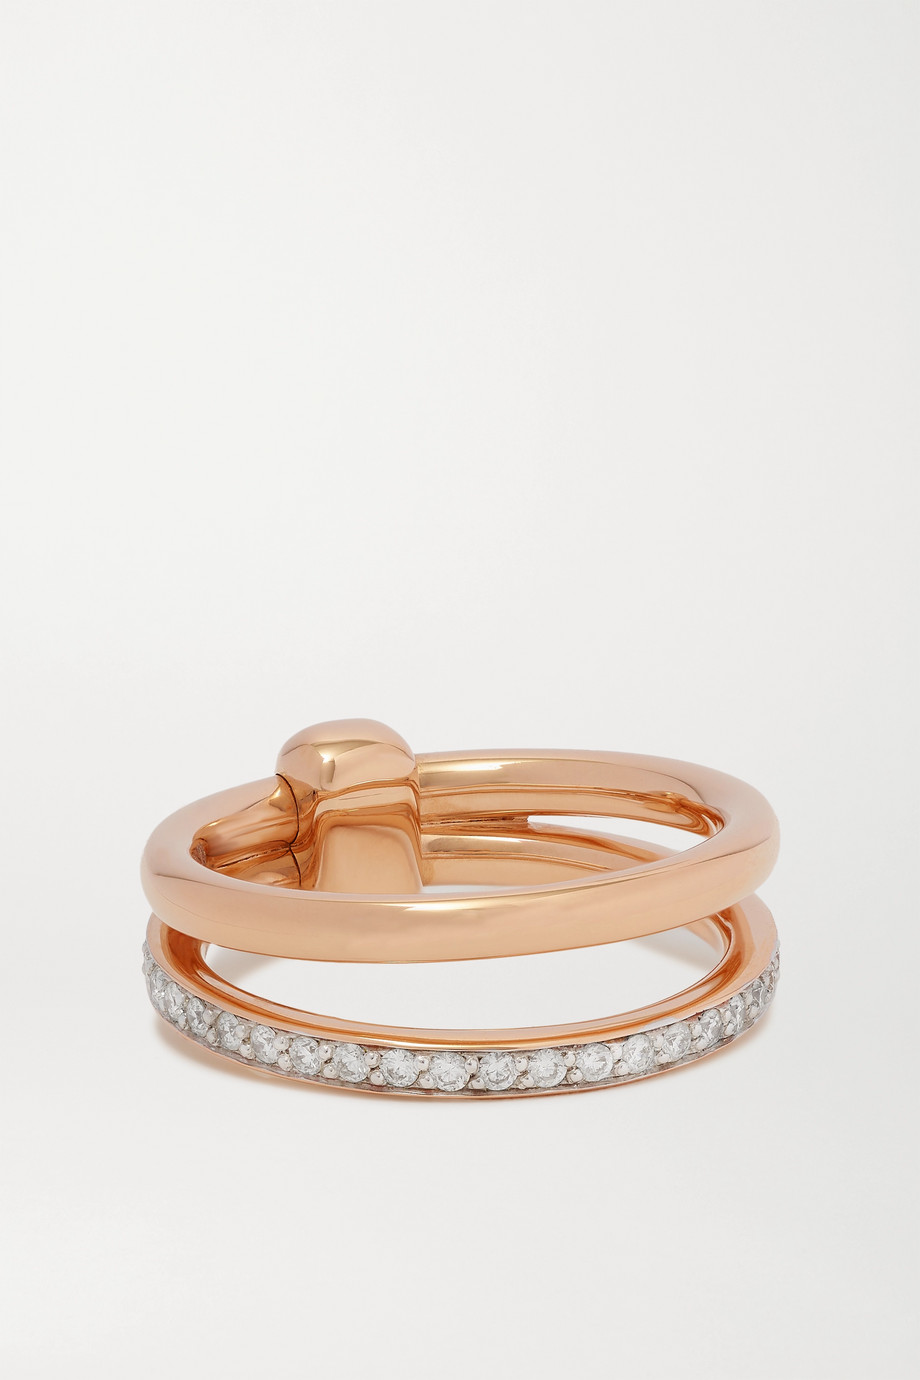 Pomellato Iconica 18-karat rose gold diamond ring